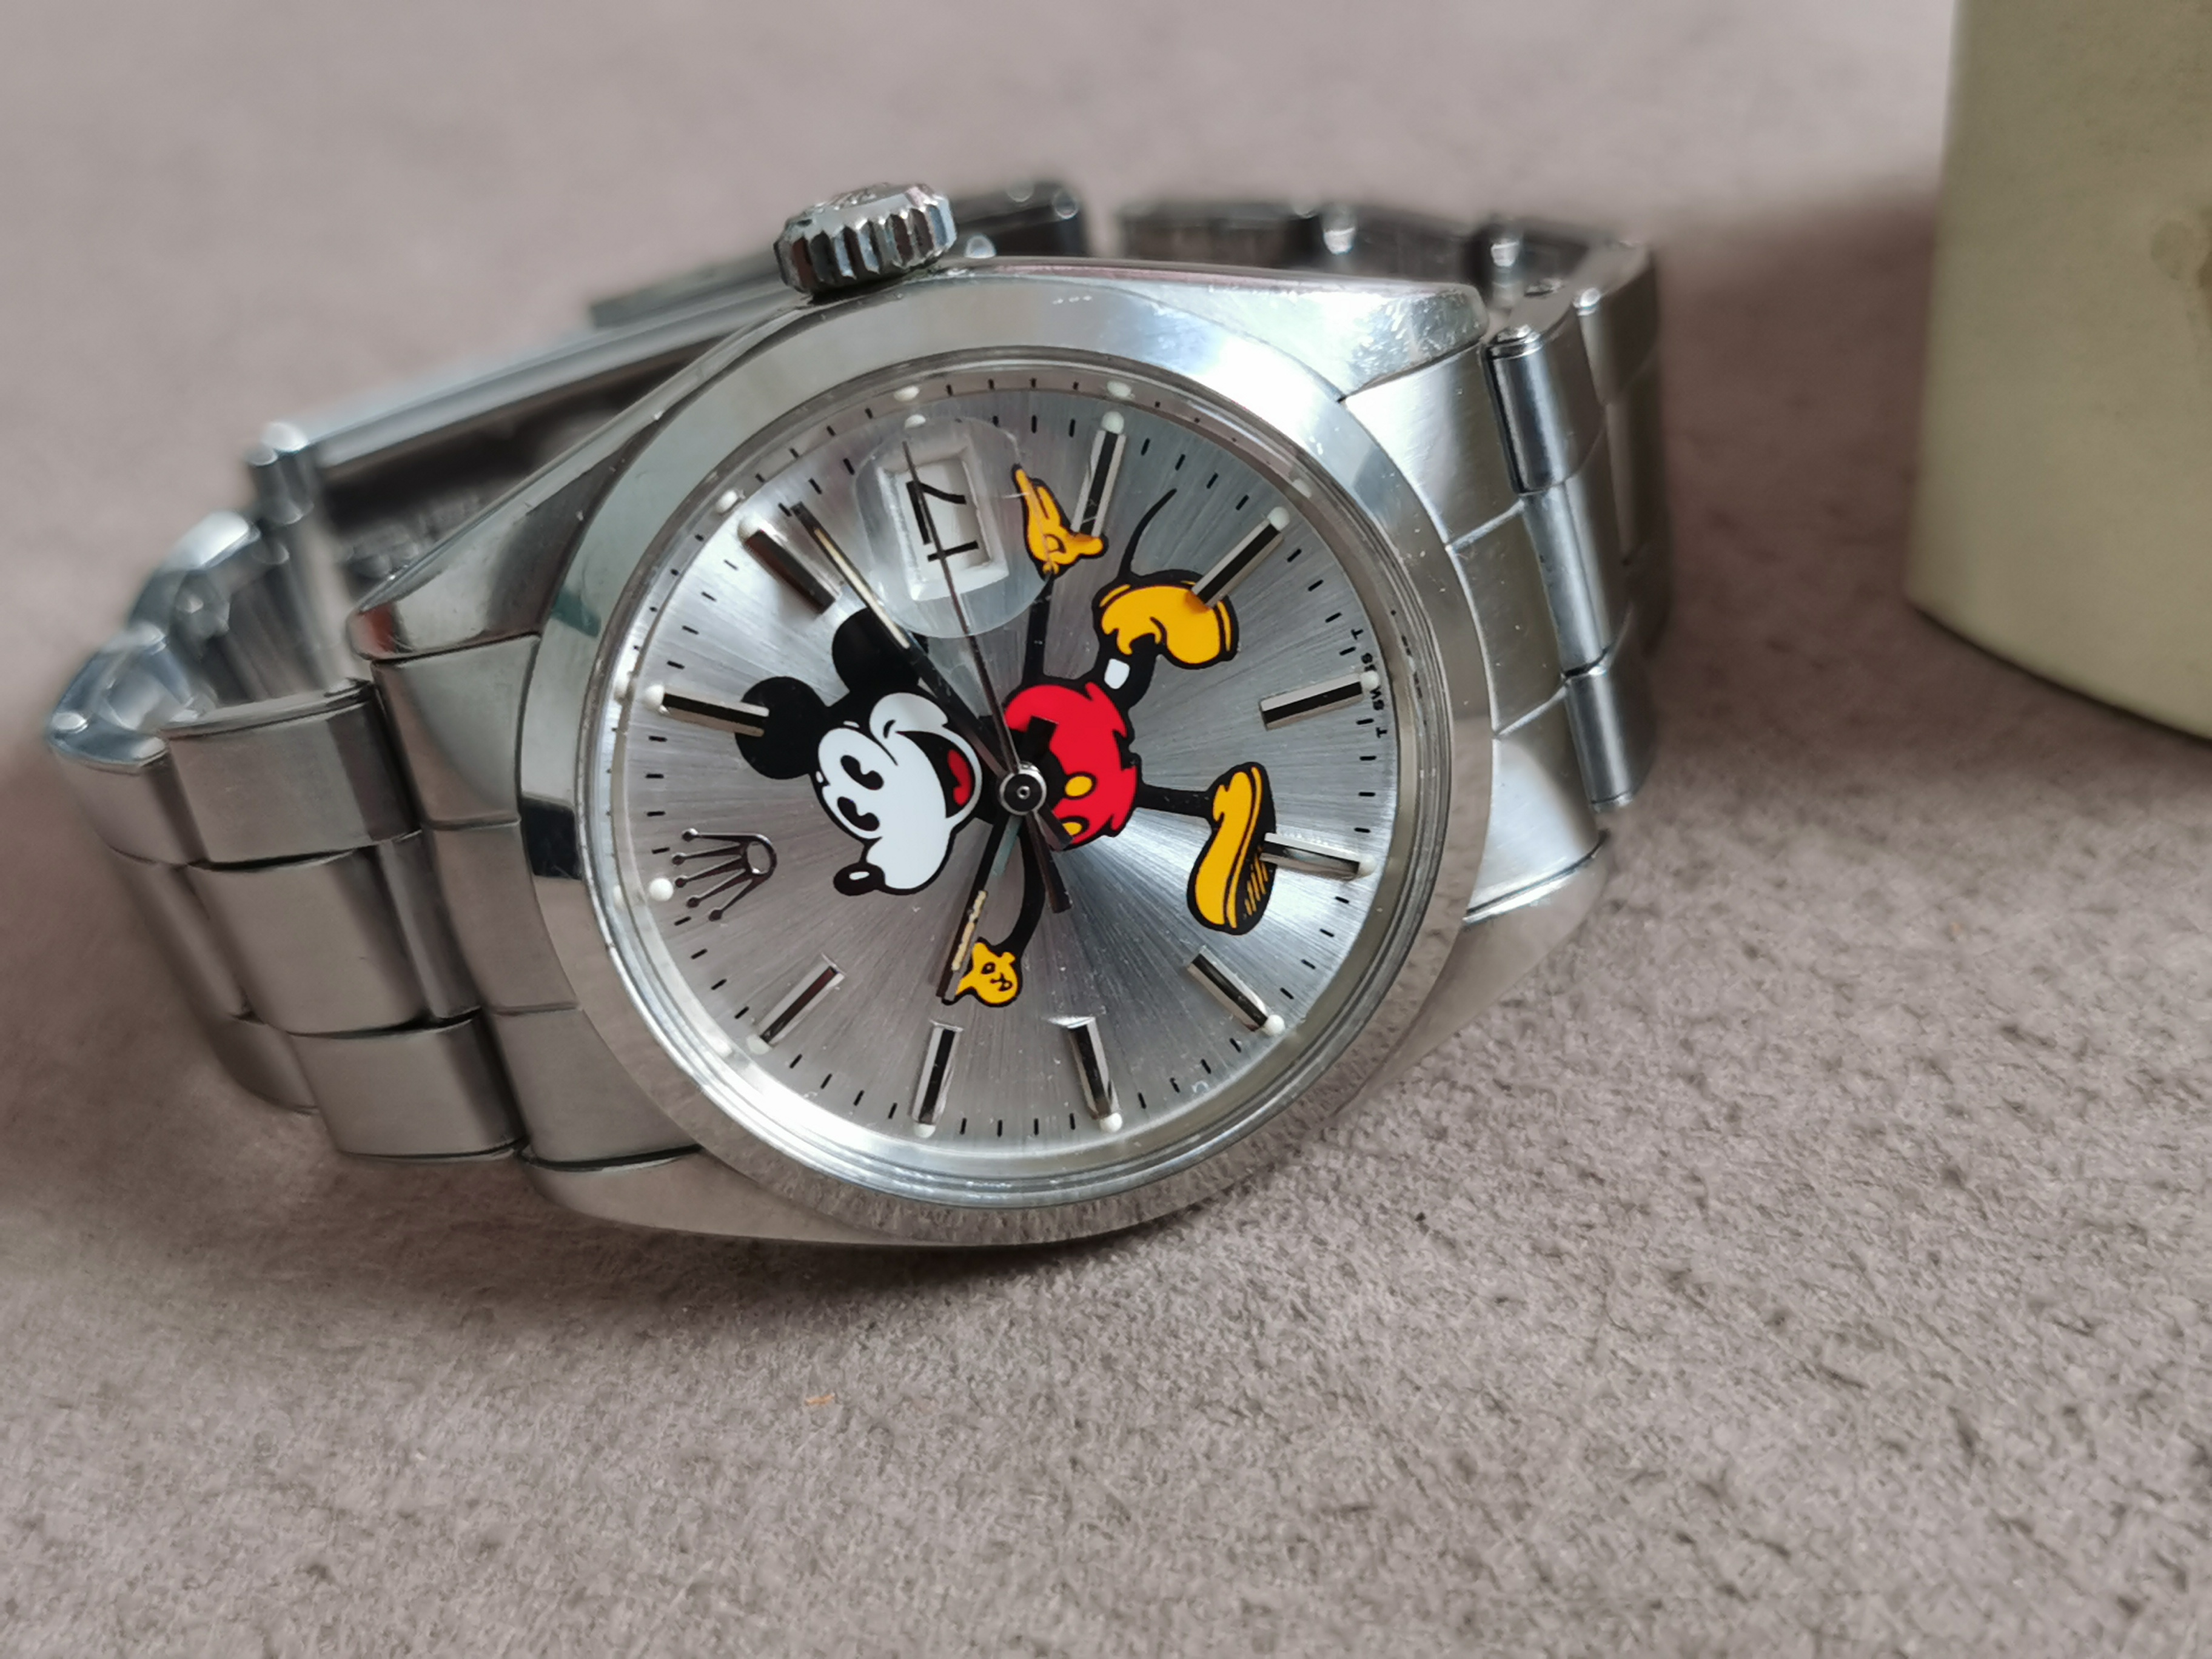 Rolex Oyster Perpetual Date Oyster Perpetual Date 1500 Mickey Mouse dial 1970 caliber 1570 | San Giorgio a Cremano